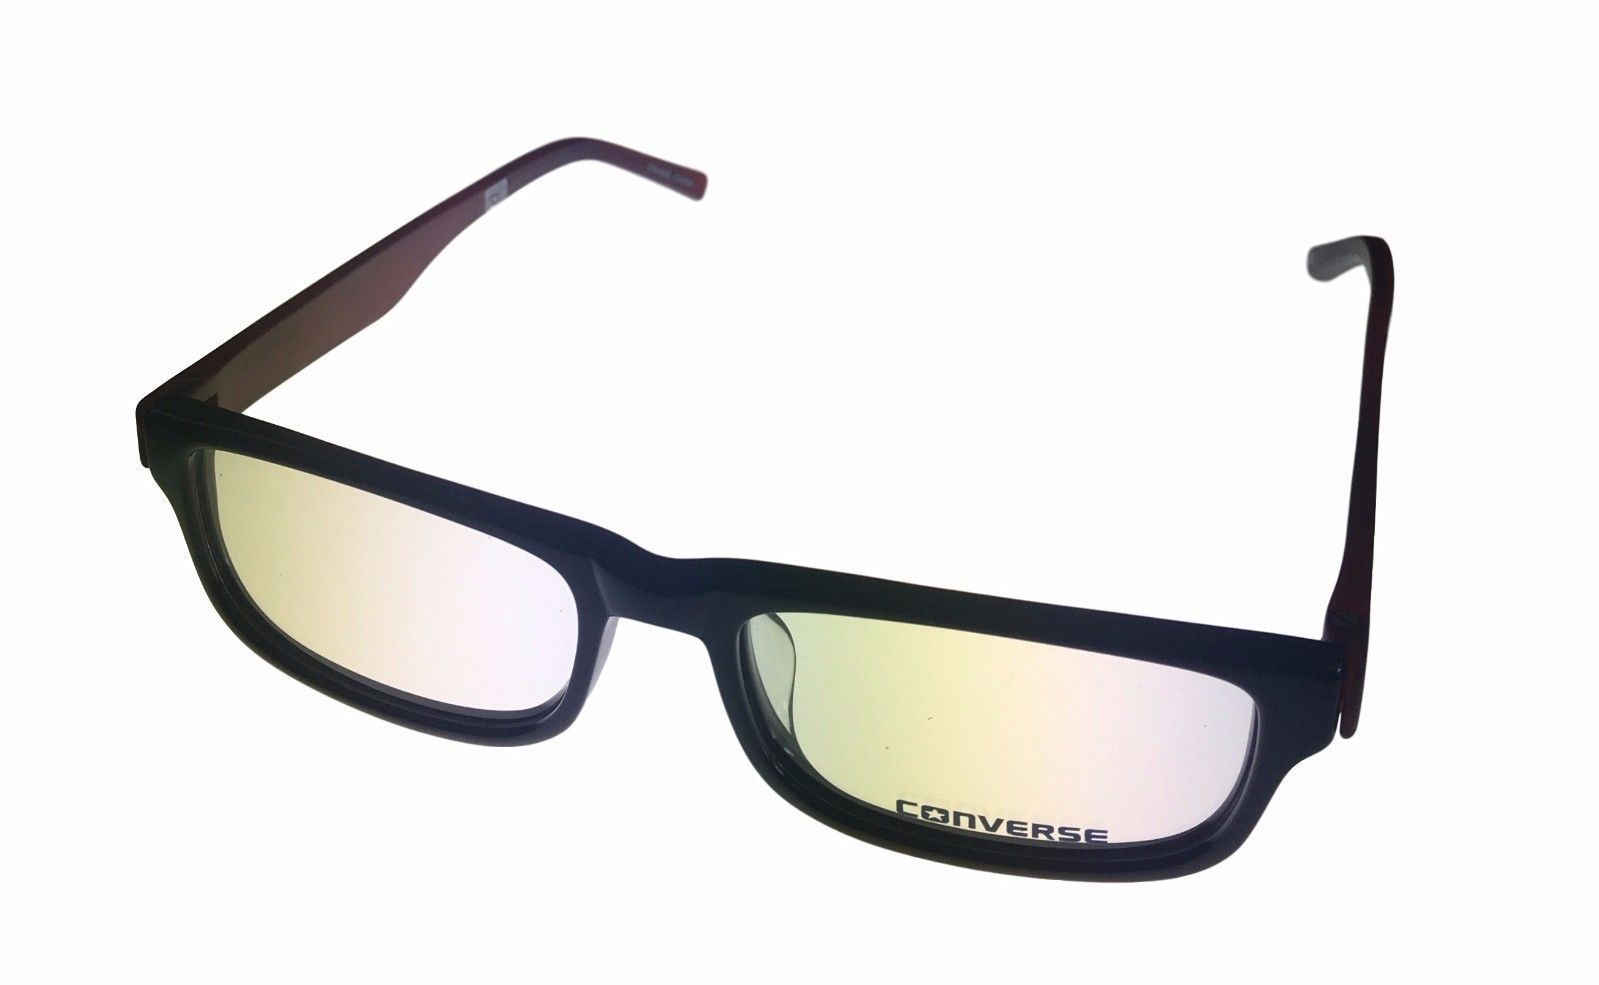 Converse Eyeglasses: 1 customer review and 61 listings